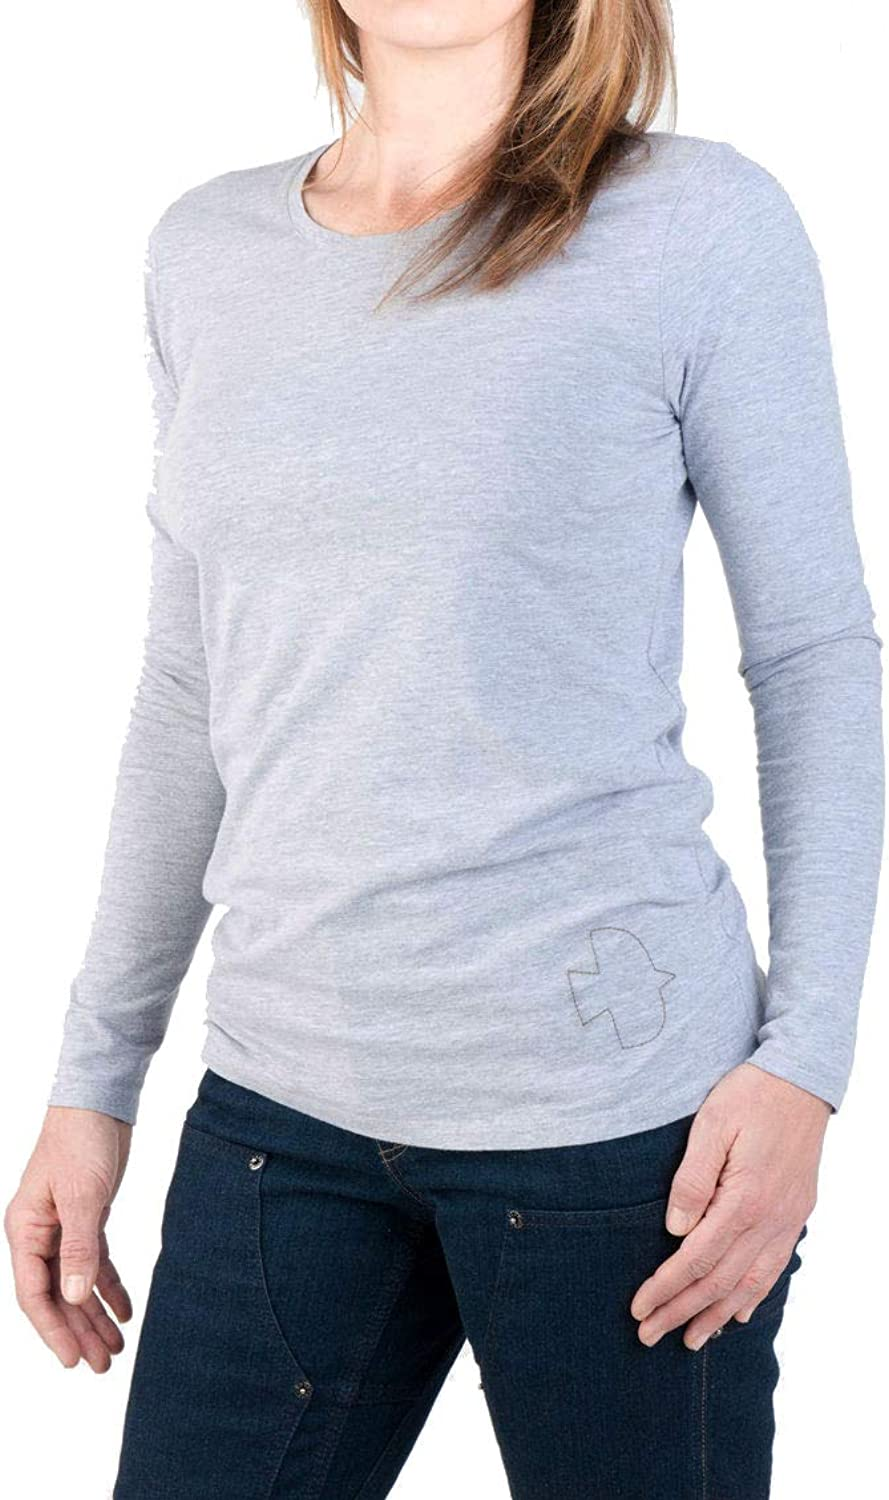 Dovetail Workwear Long Sleeve Layering Tee  Feather Weight Breathable Scoop Neck  Embroidered Dove Detail